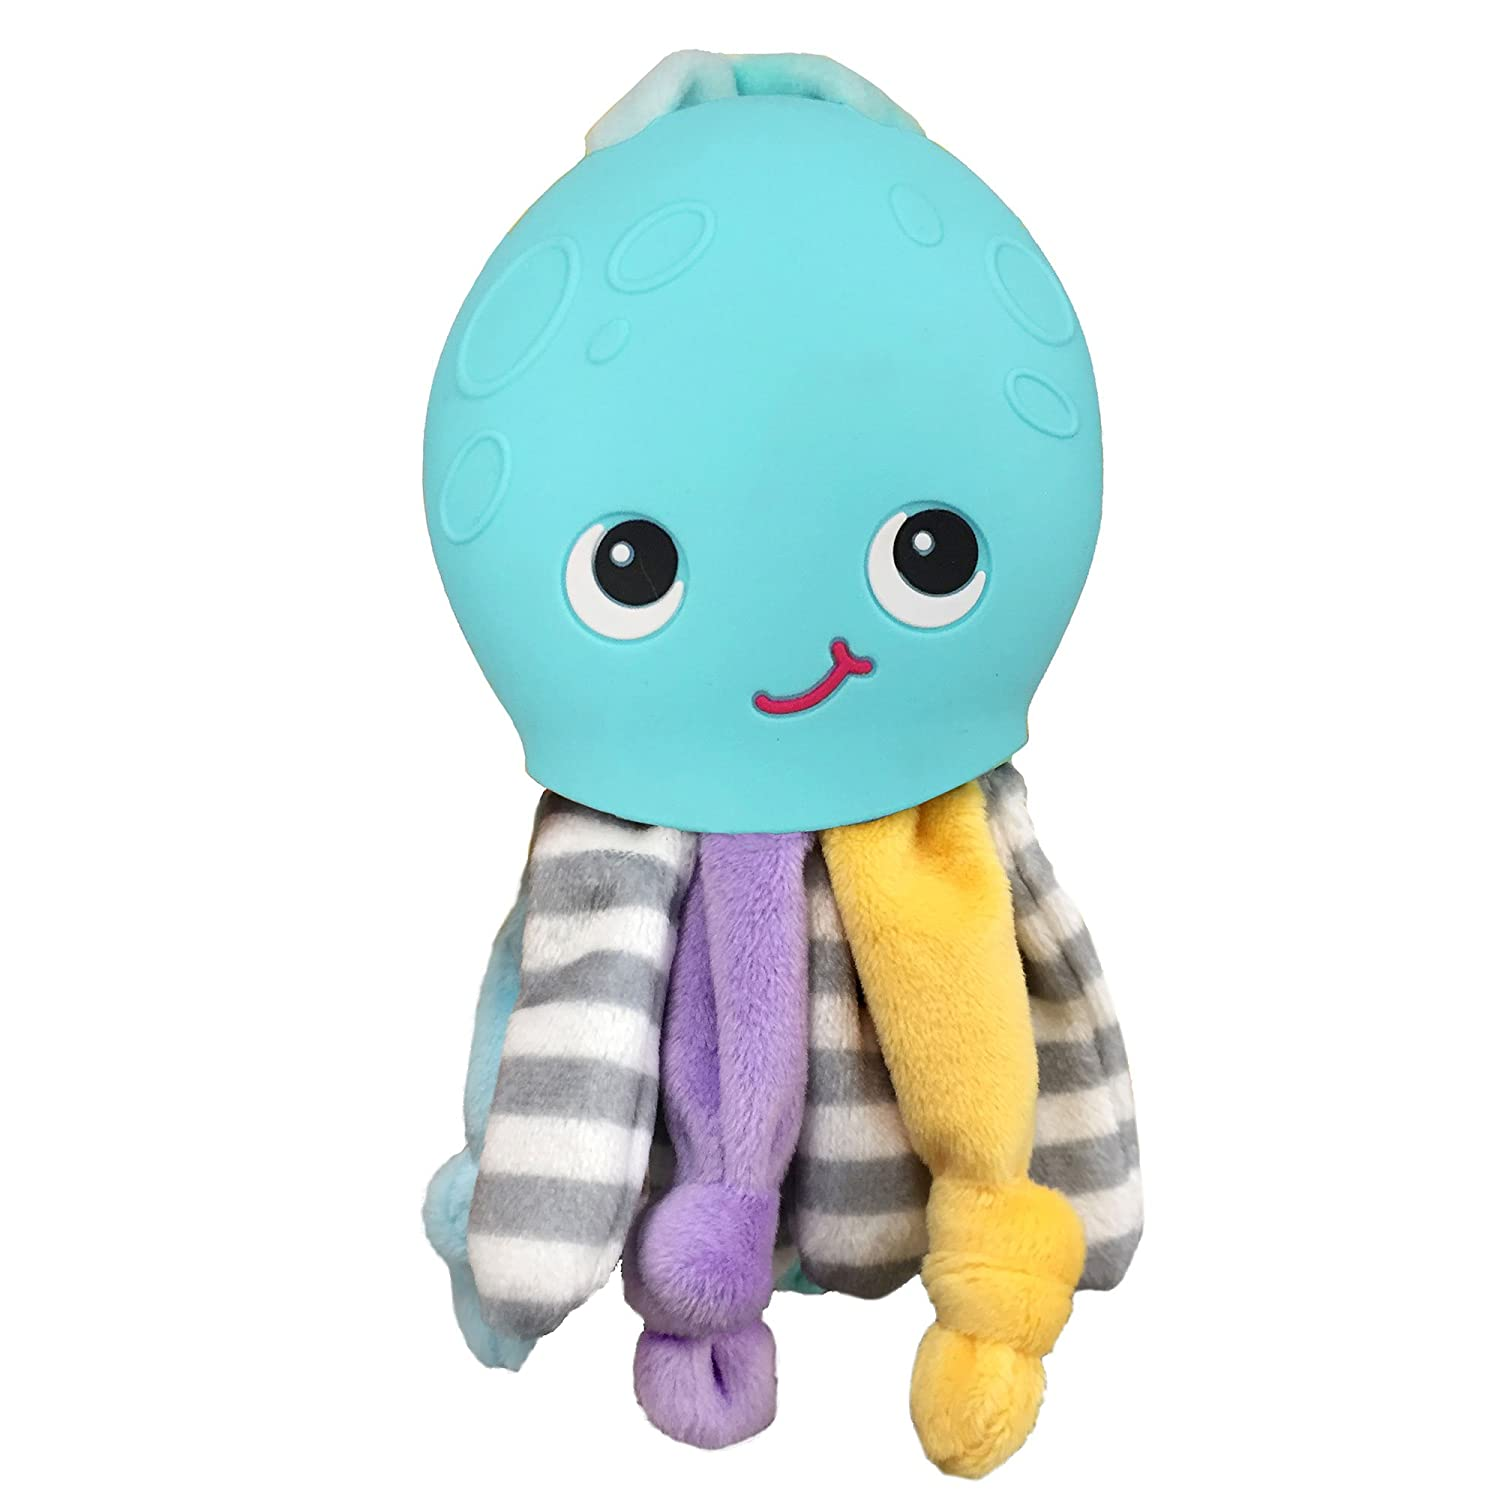 Silli Chews 2 in 1 Octopus Baby Toy Security Buddy Soft Plush and Silicone Teething Pain Relief Teether for Babies Infants and Toddlers PVC Lead Phthalate and BPA Free Chew Toy Mint Green